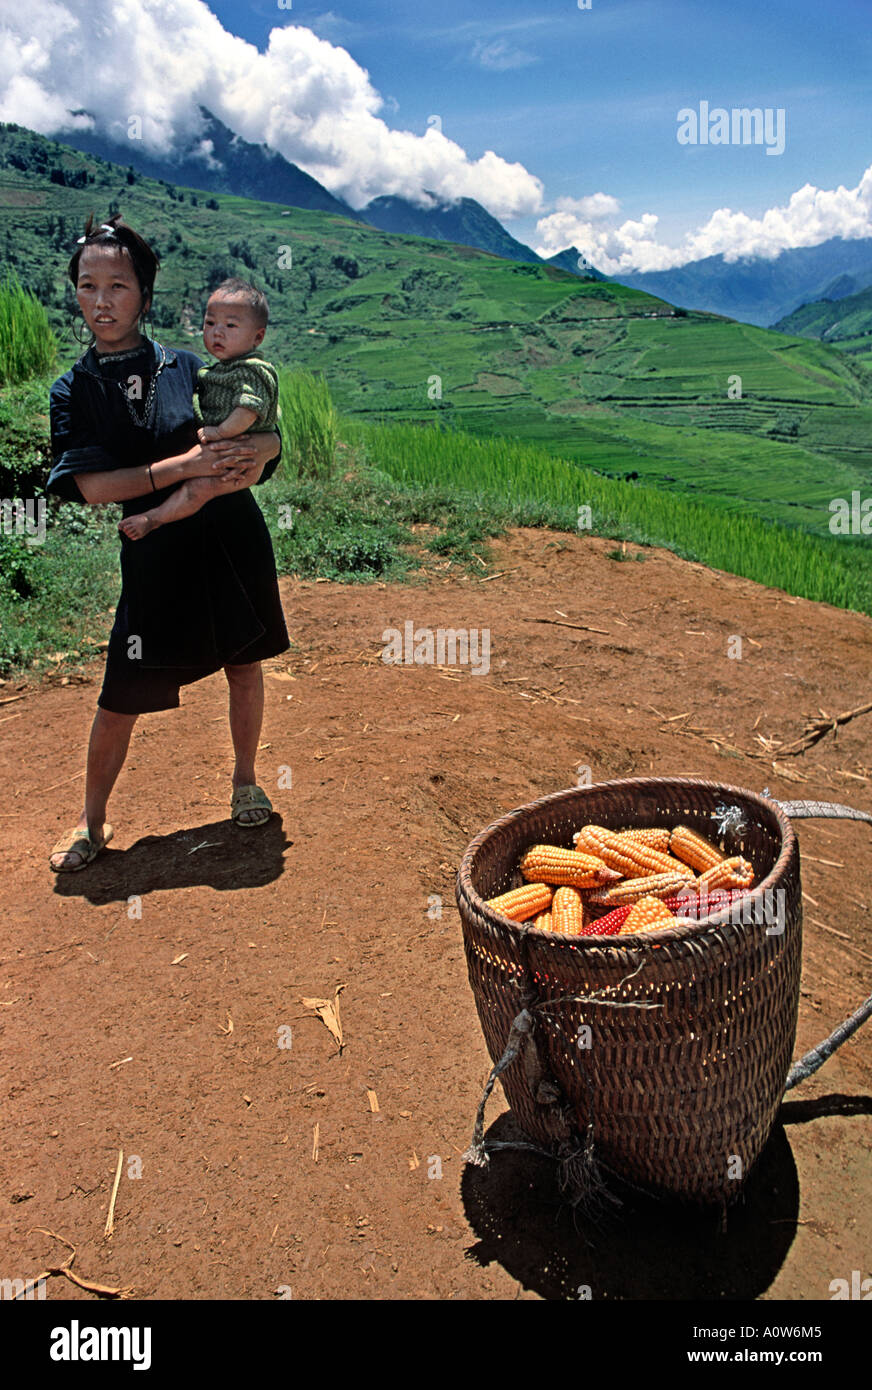 Hilltribe woman from the Hmong group standing with baby beside a basket of maize cobs and surrounded by lush fields Sapa Vietnam - Stock Image